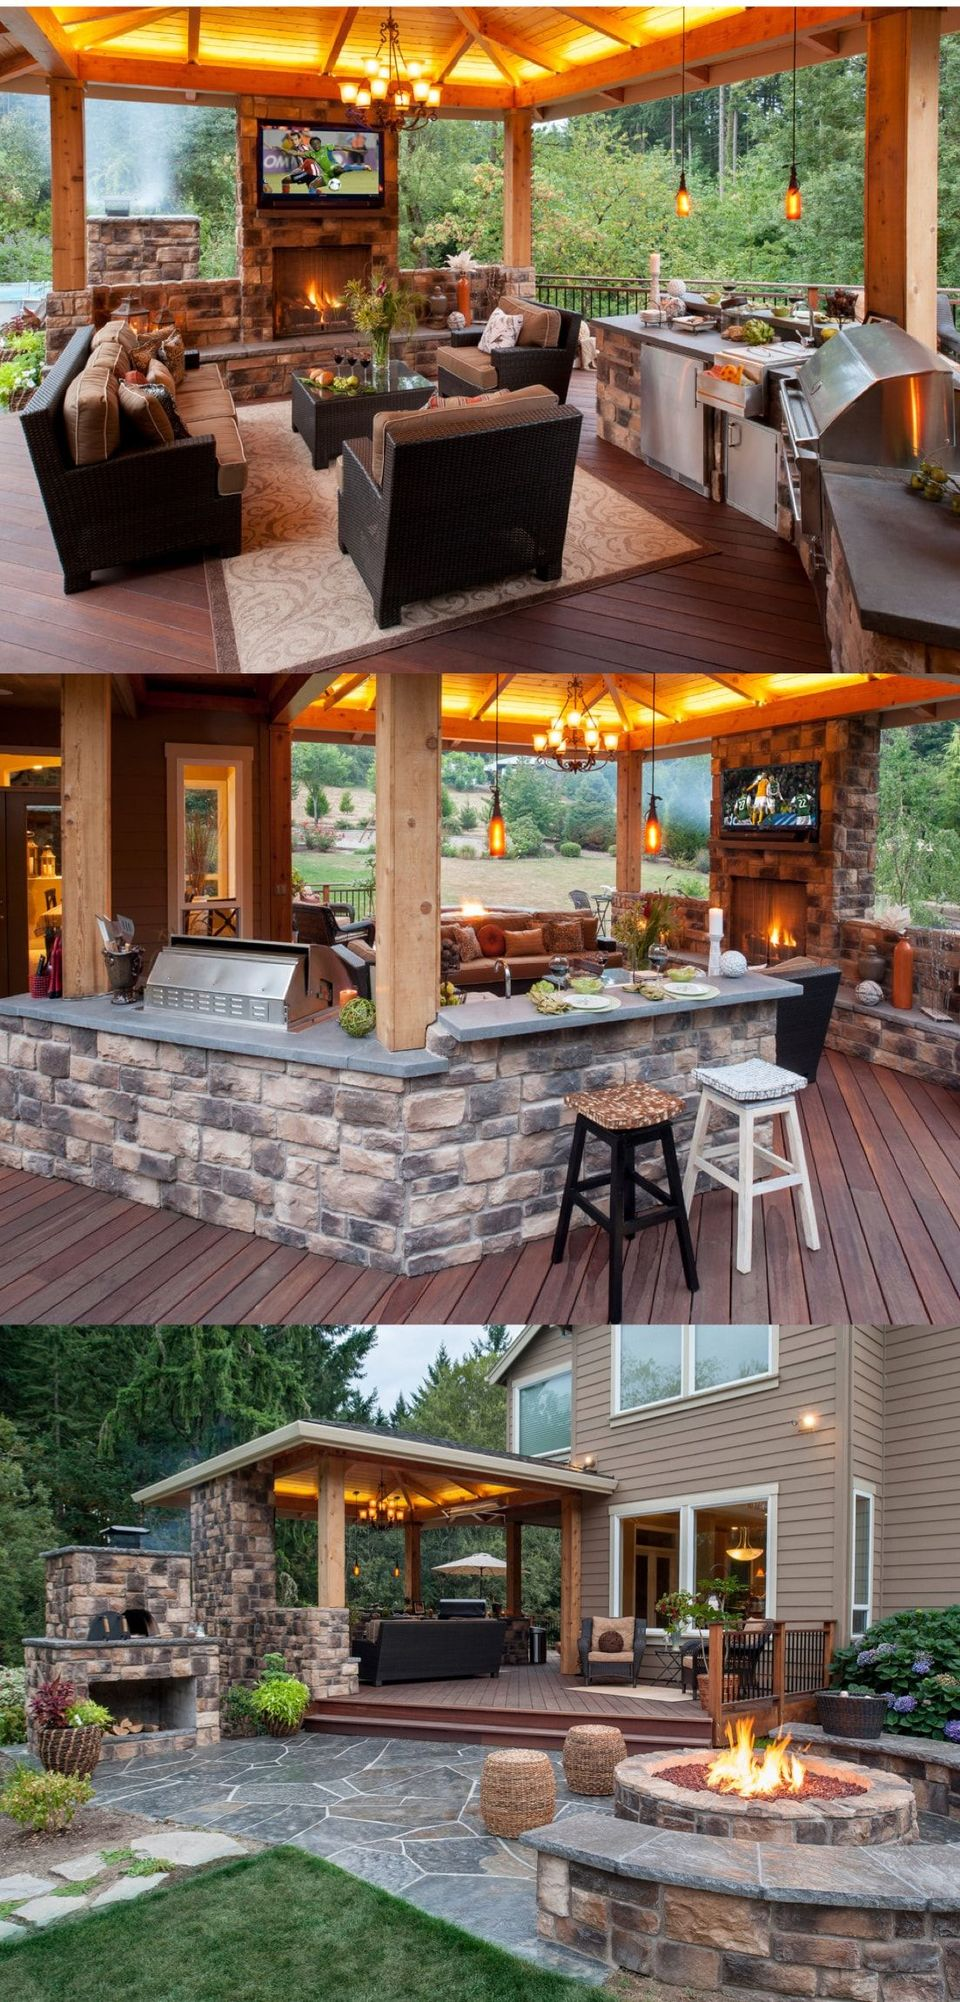 Awesome Yard and Outdoor Kitchen Design Ideas 50 - Hoommy.com